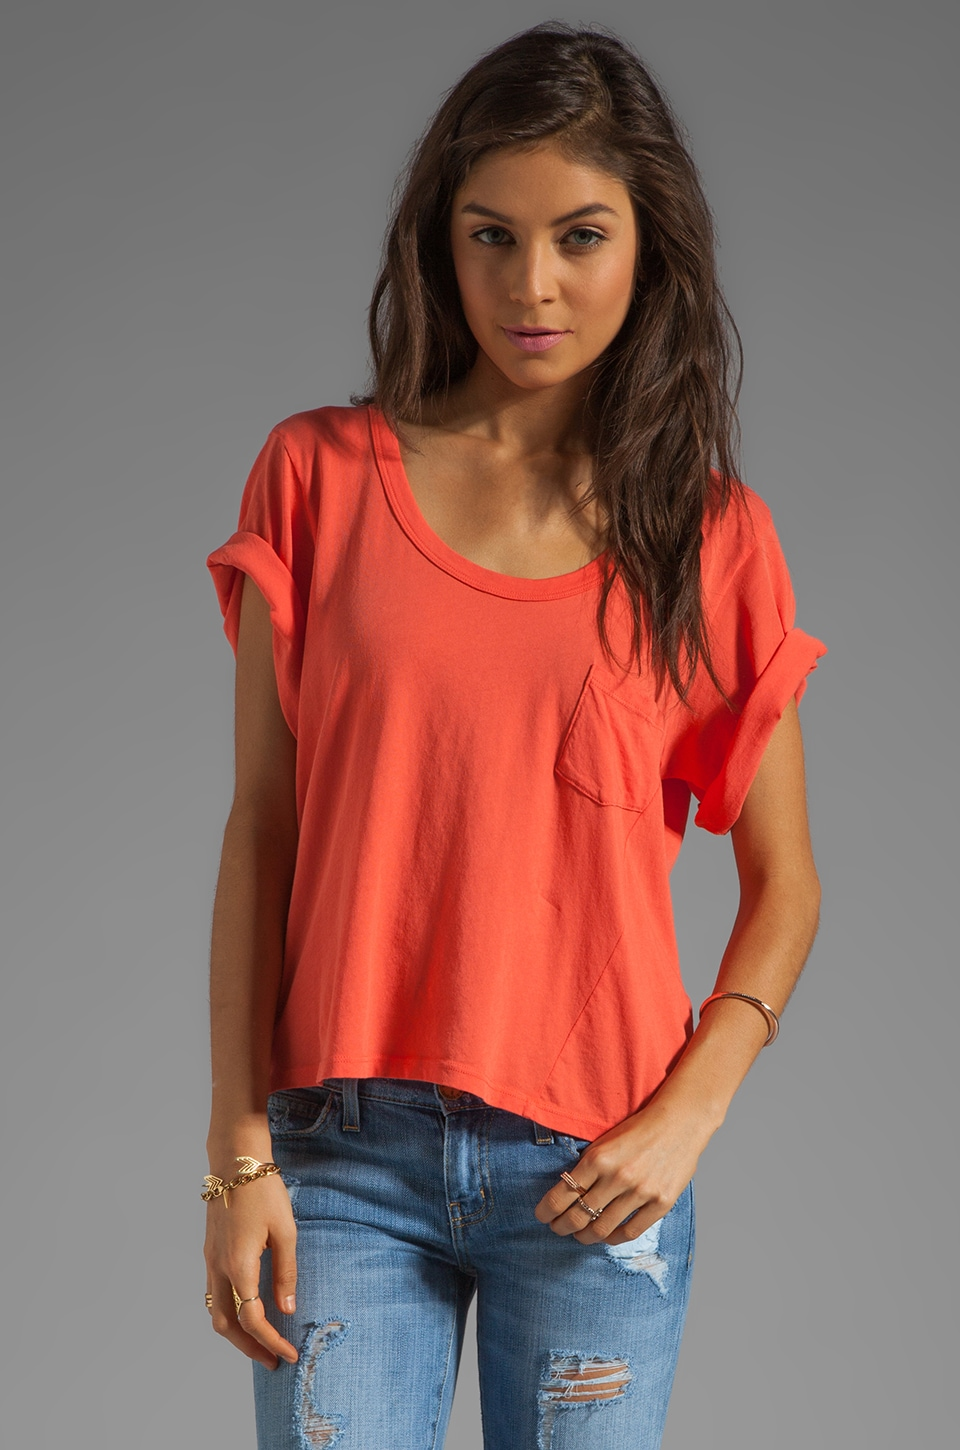 C&C California Drape Sleeve Cut-Out Back Box Tee in Geranium